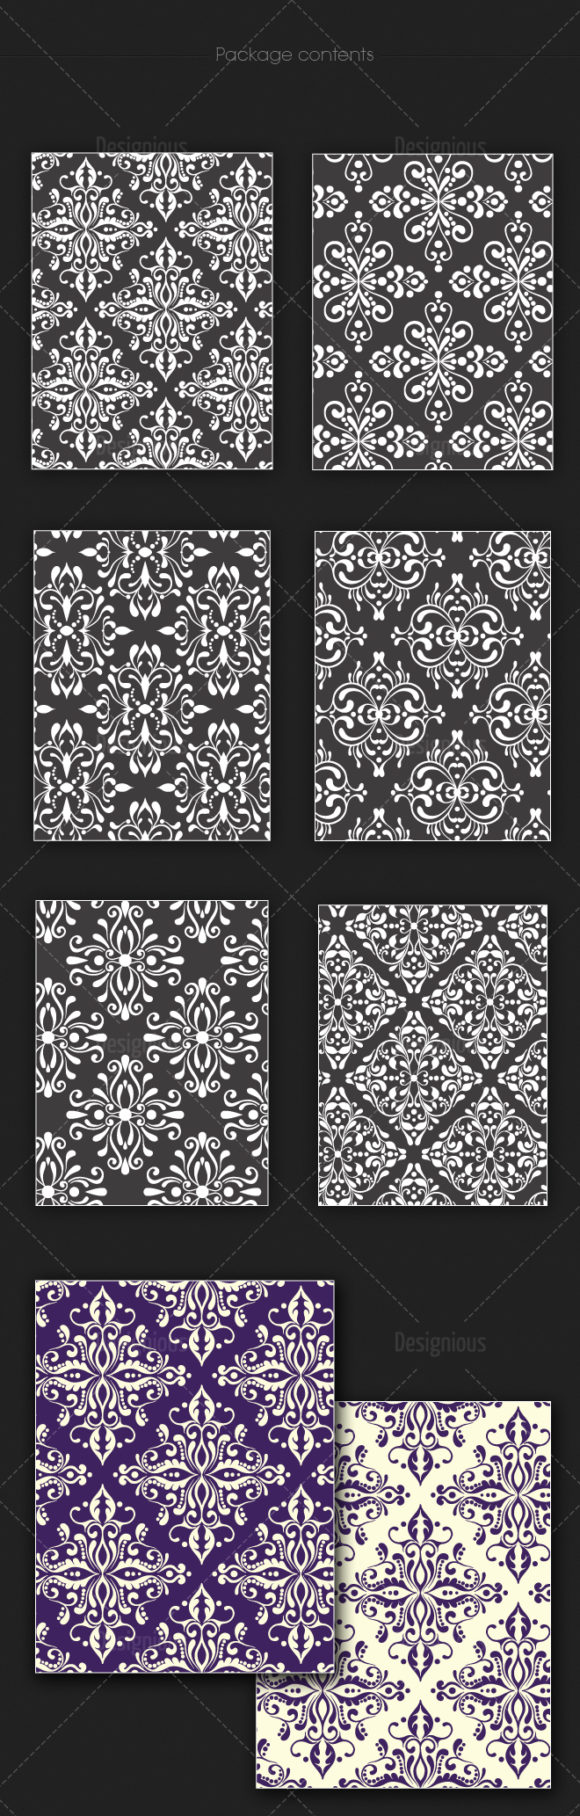 Seamless Patterns Vector Pack 126 products seamless patterns vector pack 126 large